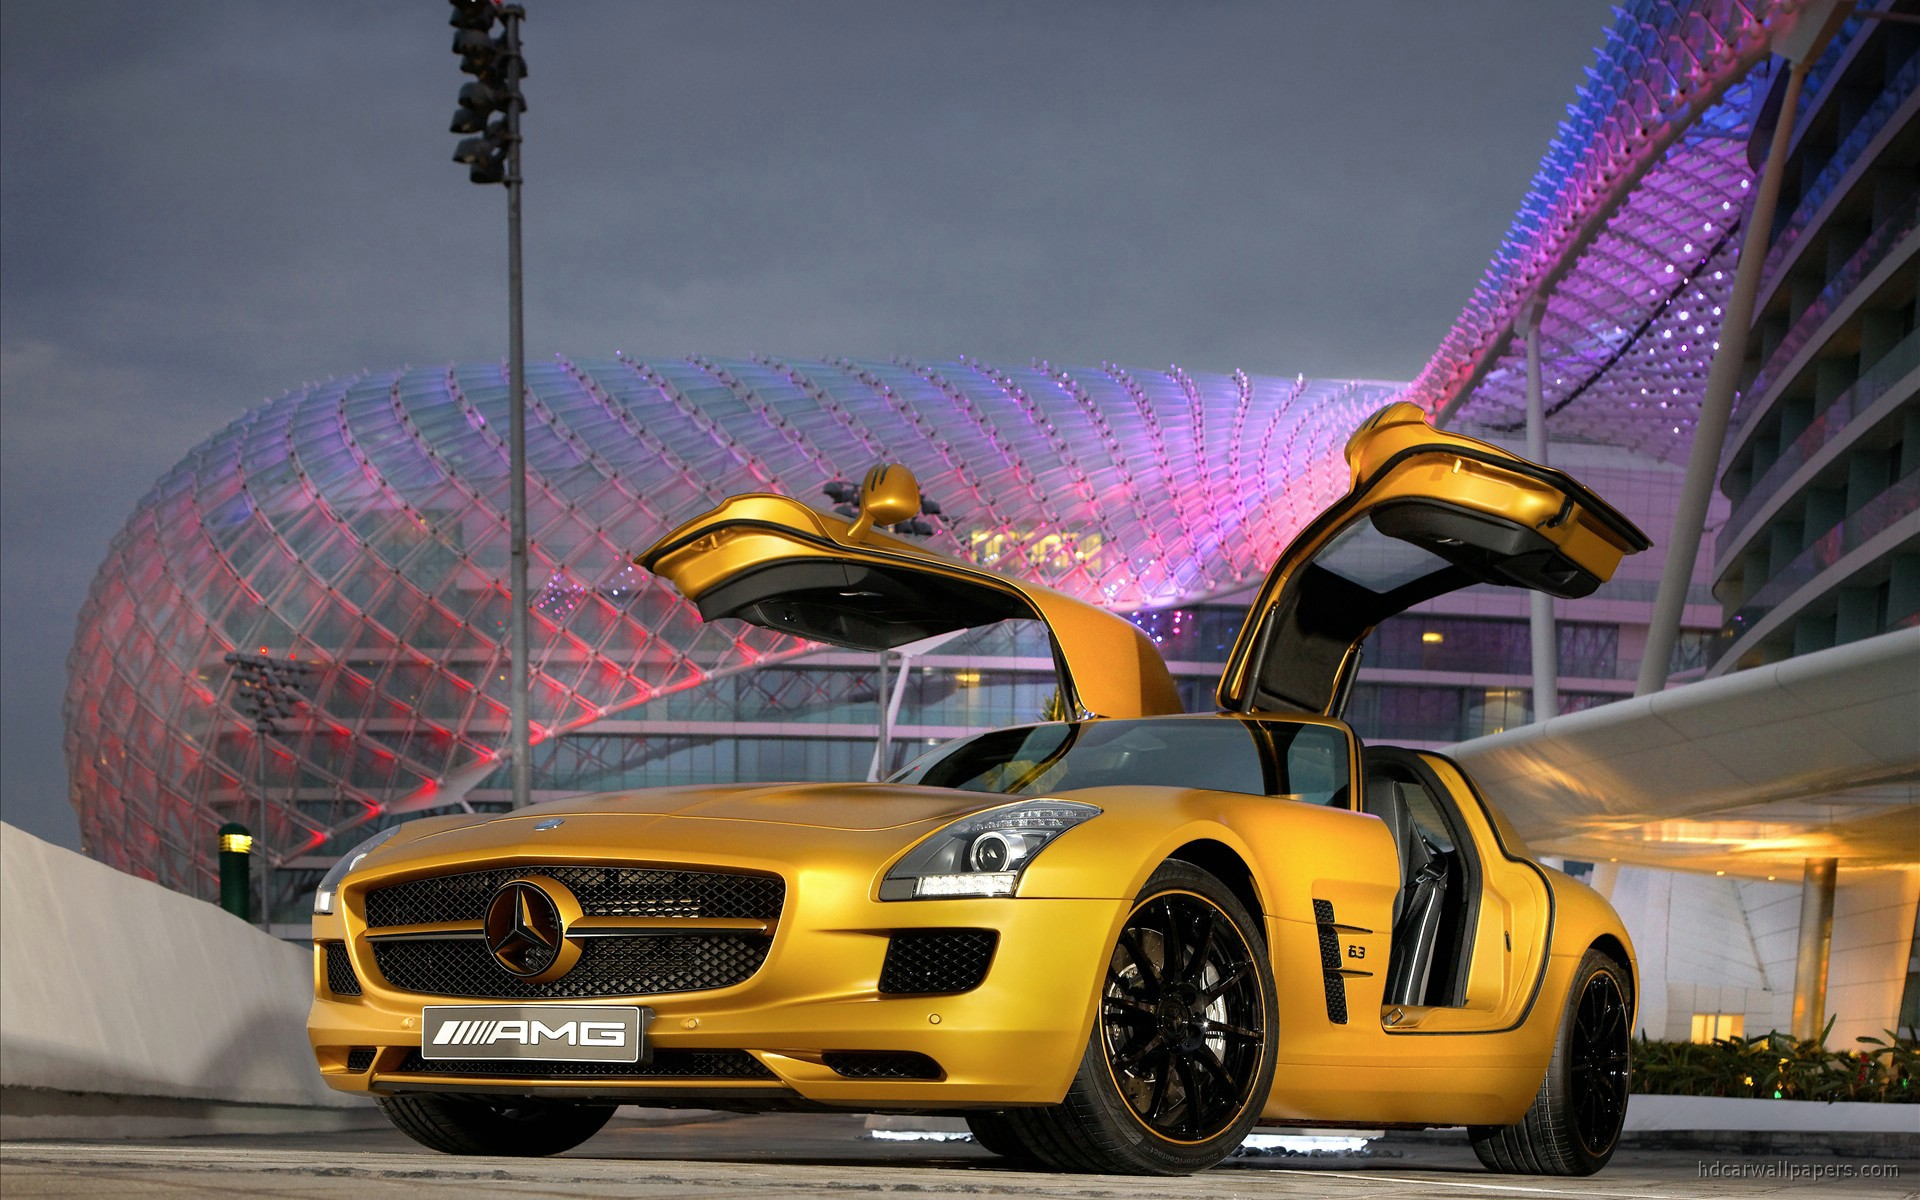 Gold Car Wallpapers: 2010 Mercedes Benz SLS AMG Desert Gold 5 Wallpaper